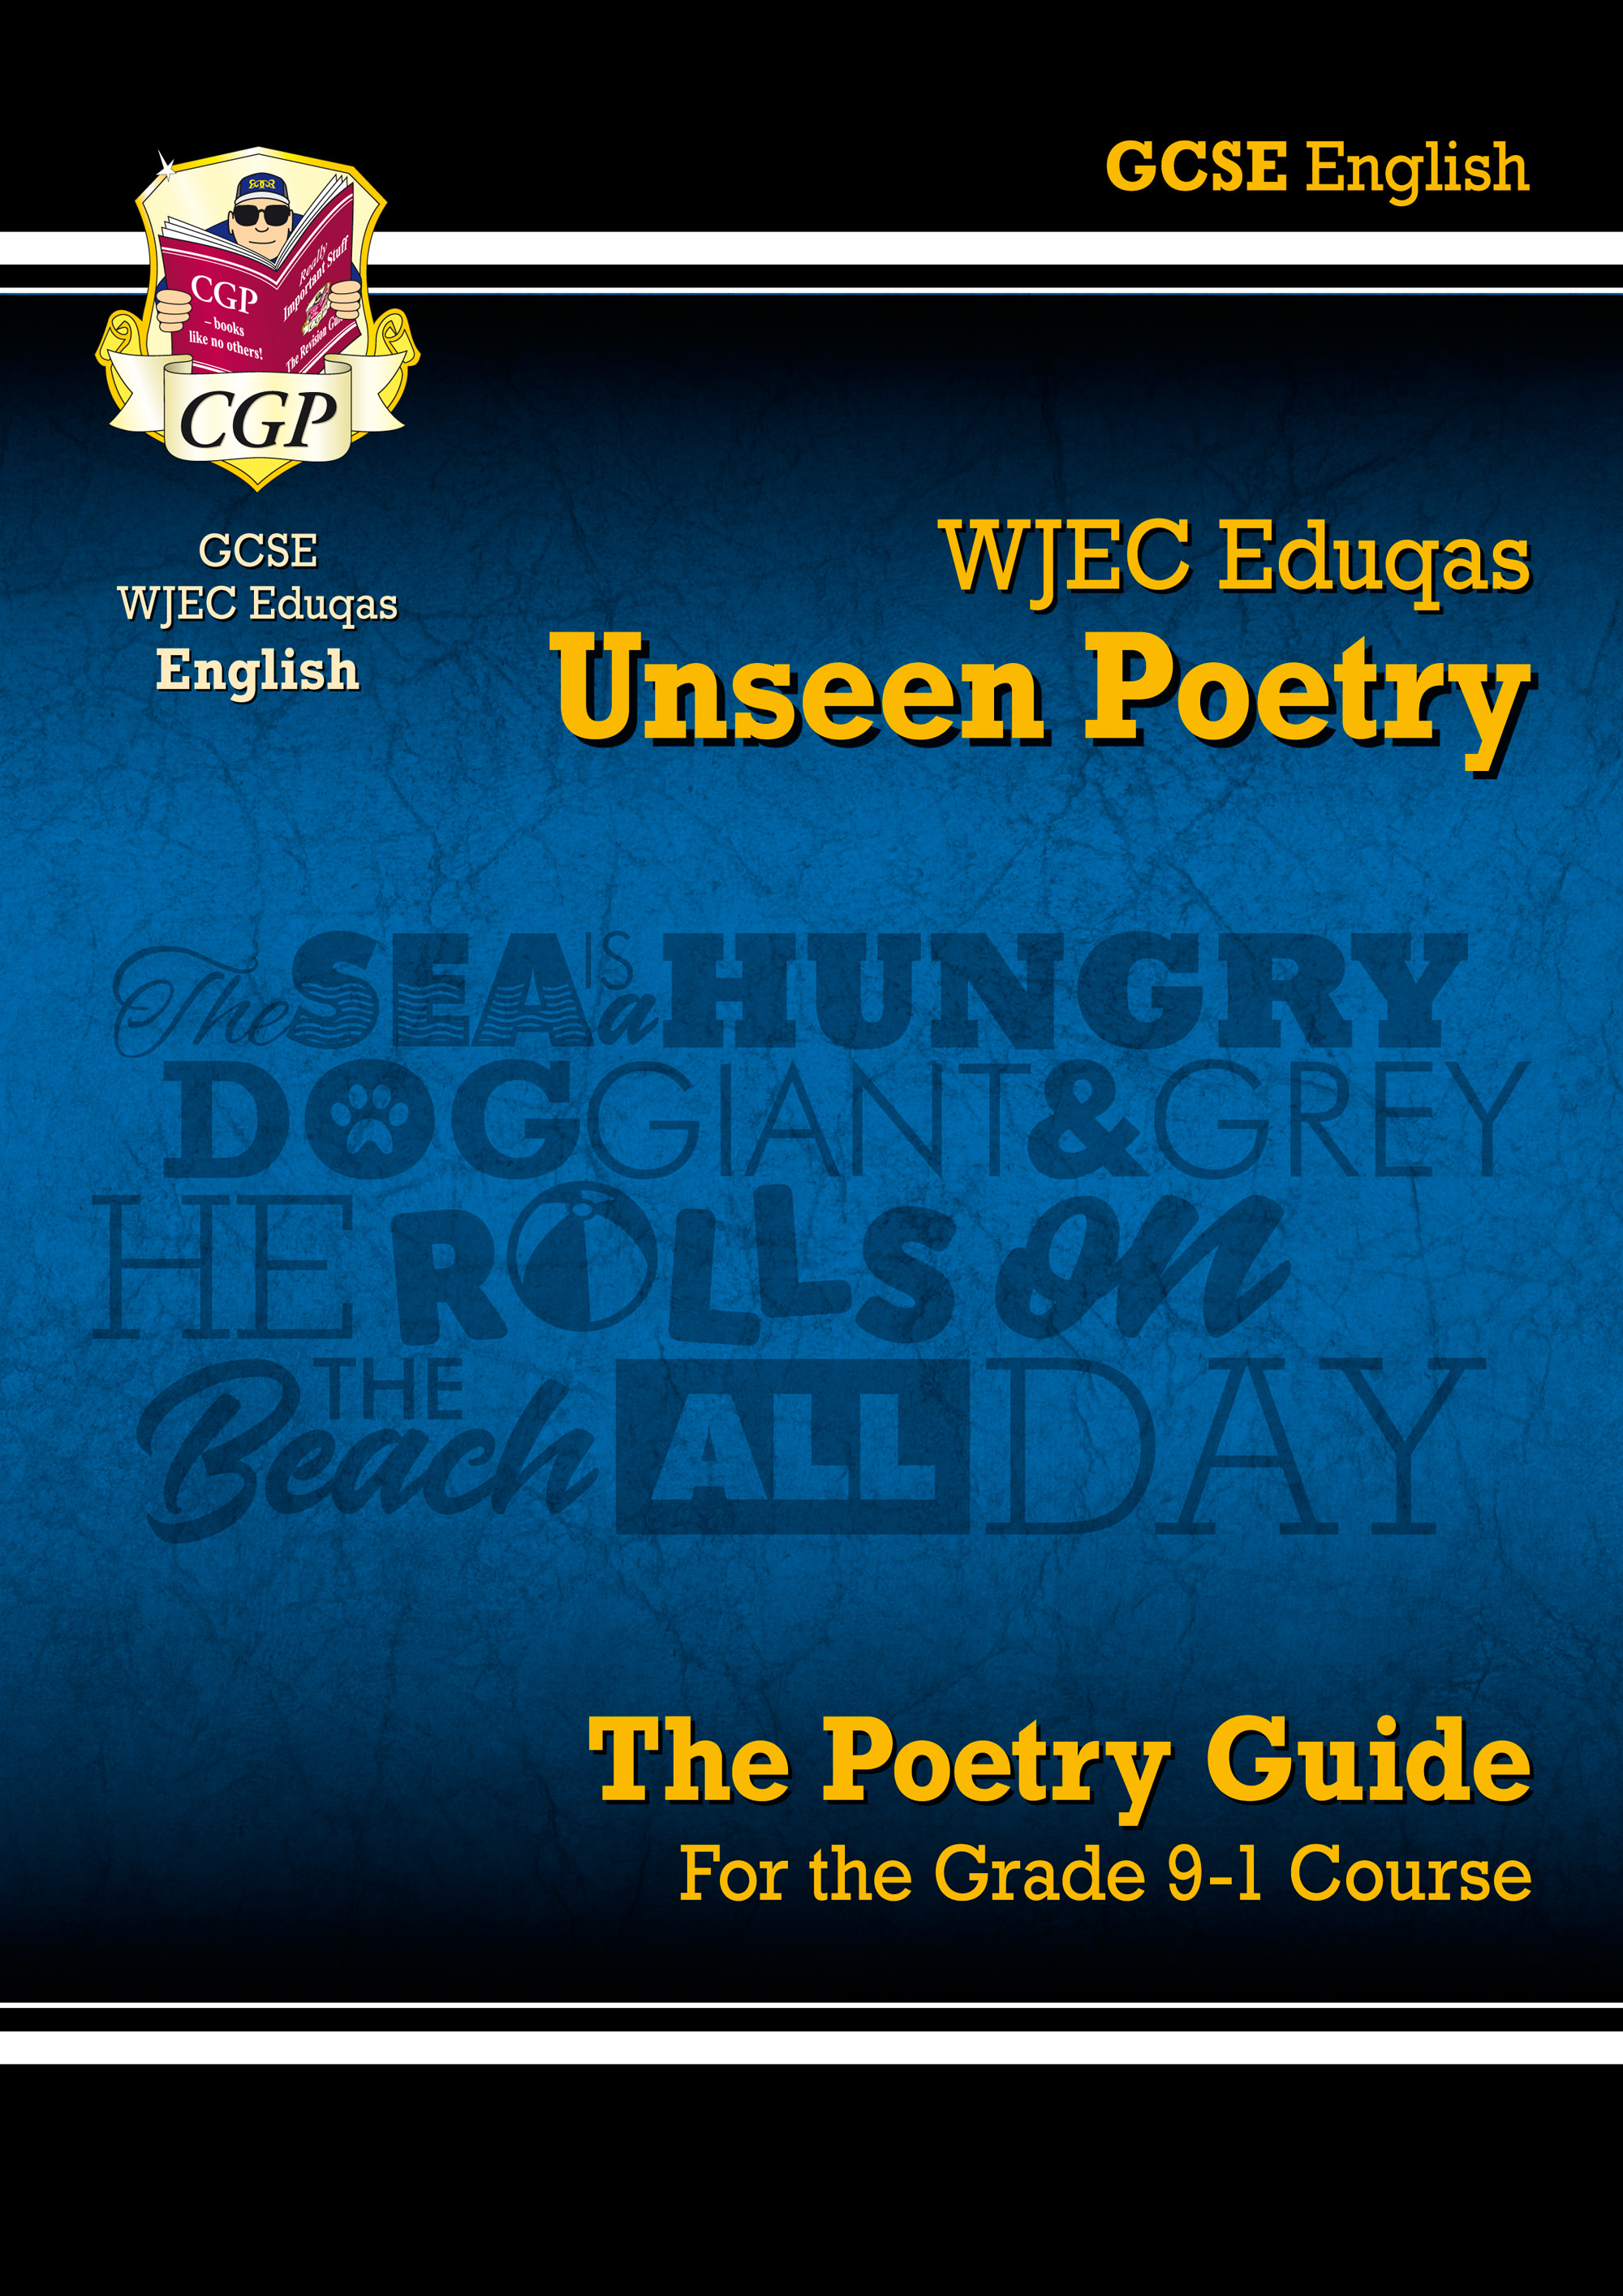 EUWR41 - Grade 9-1 GCSE English Literature WJEC Eduqas Unseen Poetry Guide